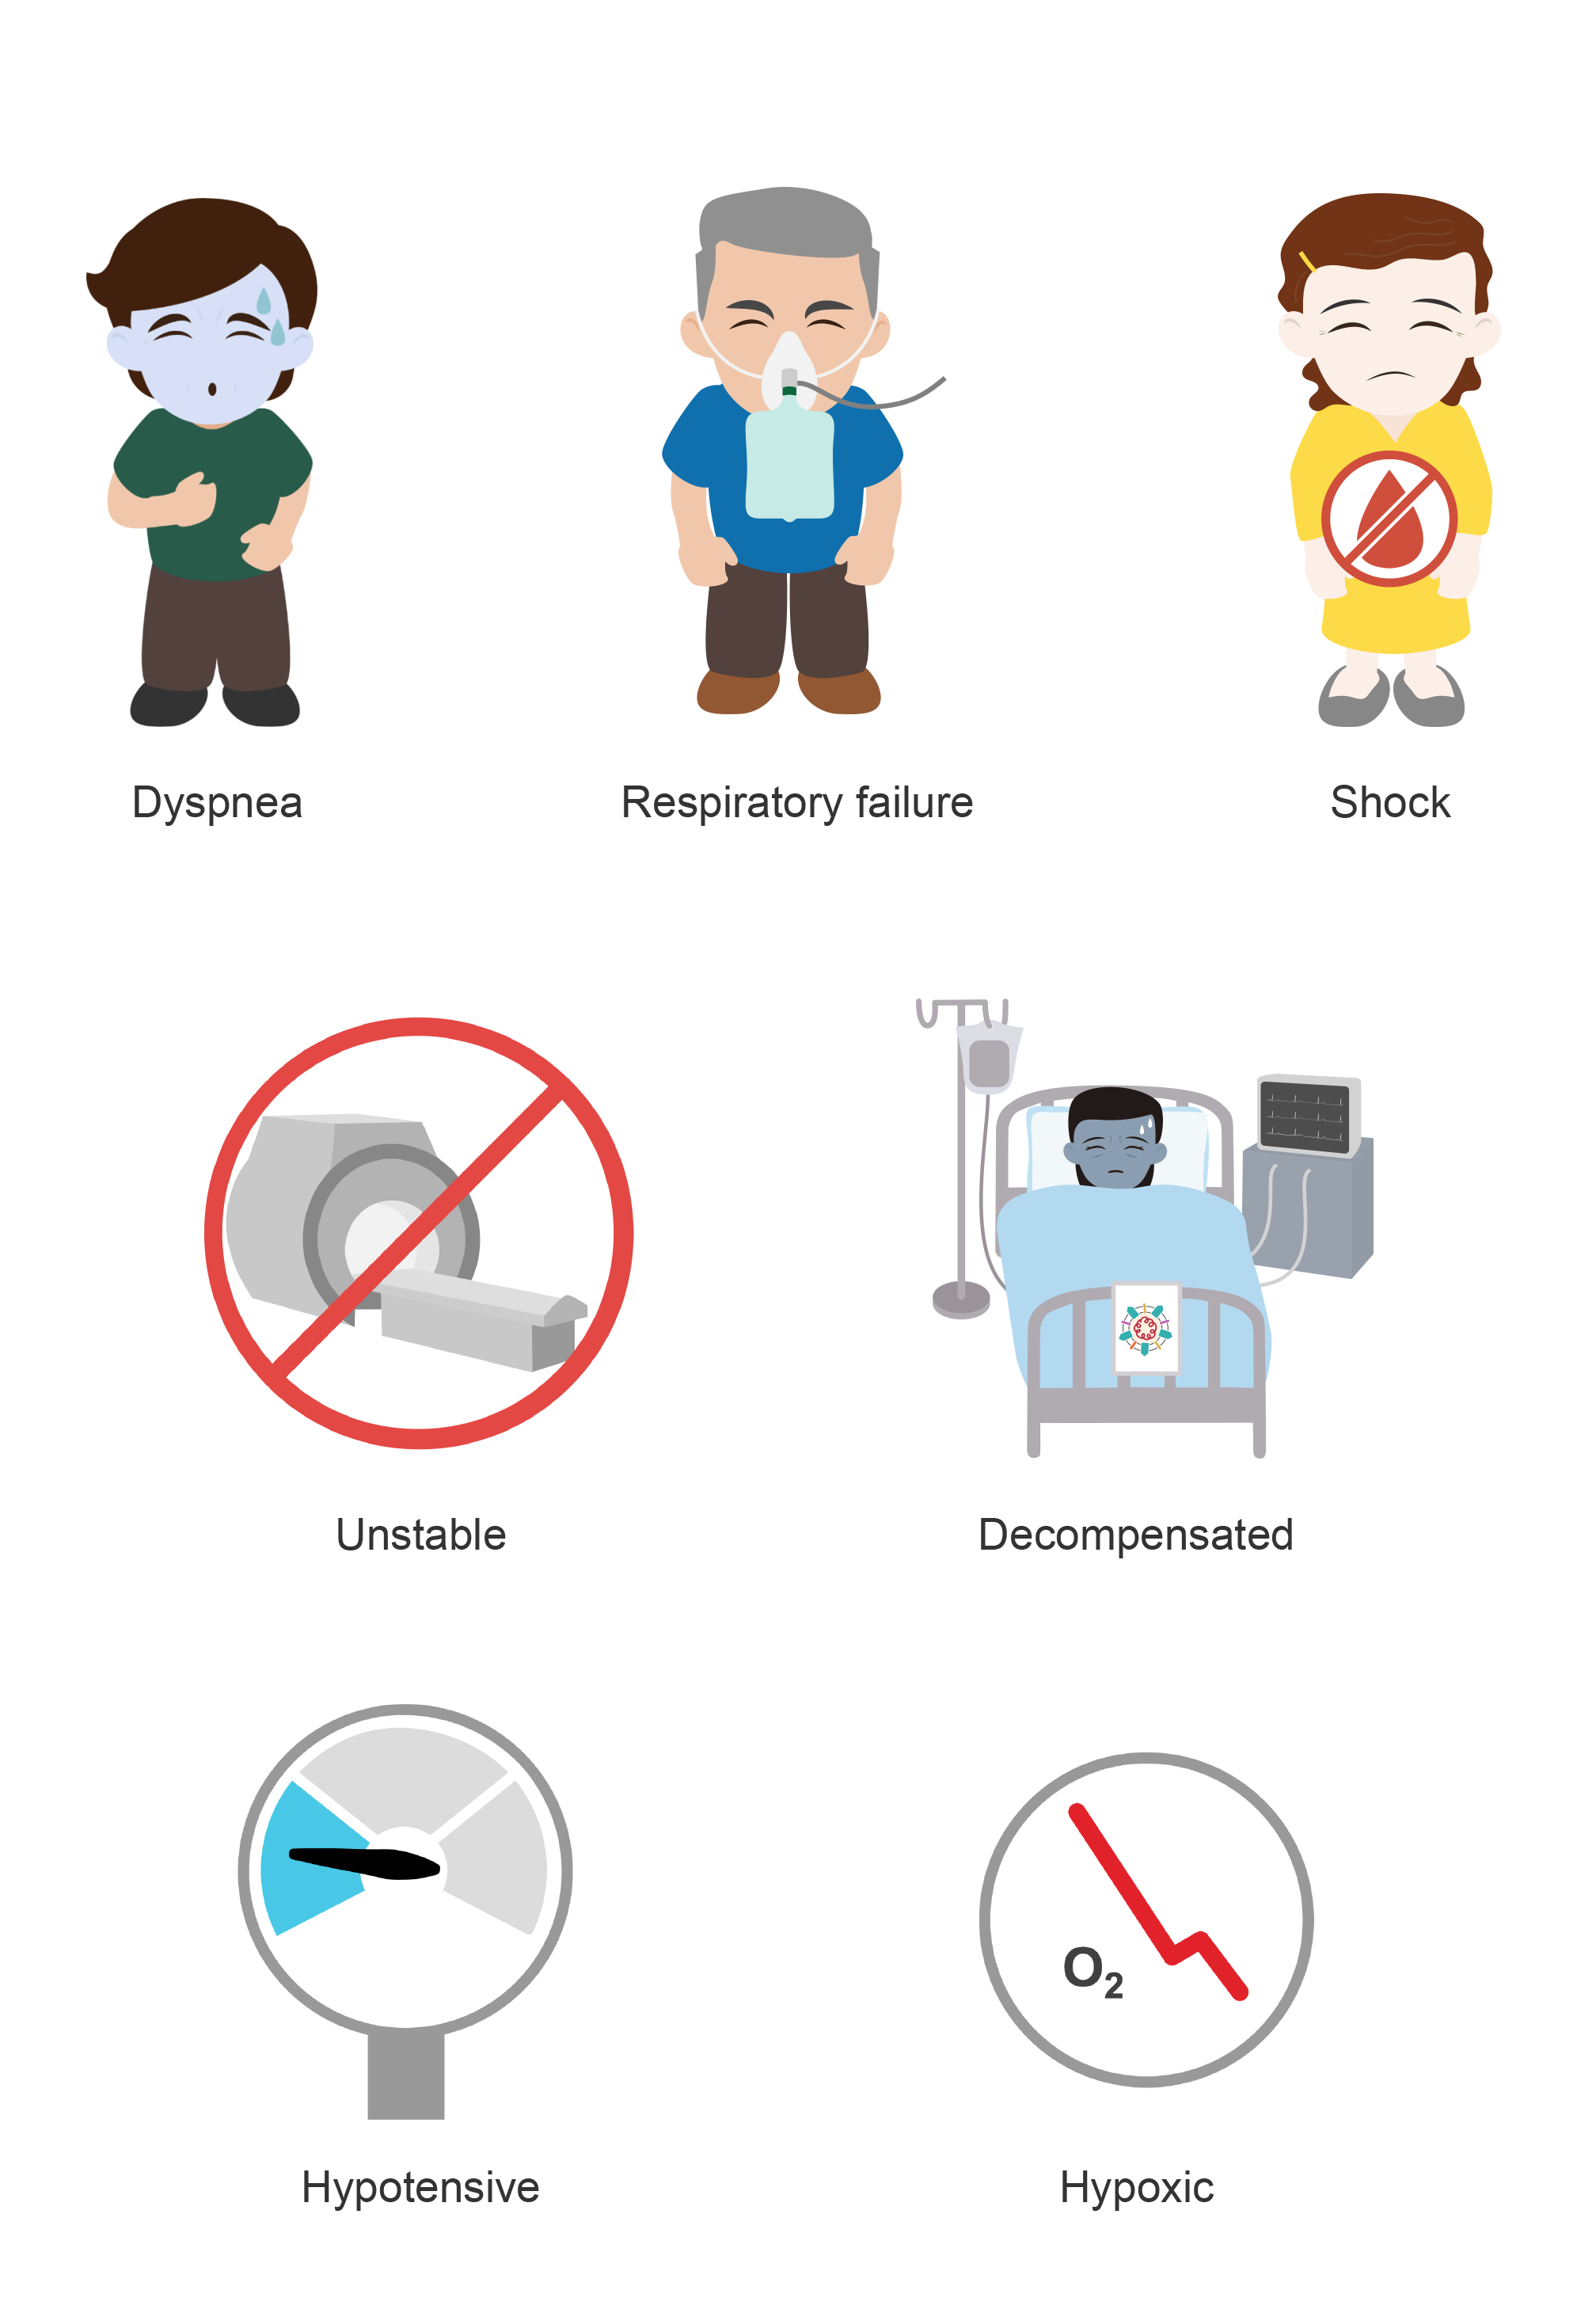 Multi-component illustration showing indication for lung us: blue-skinned patient, patient with oxygen mask, shocked patient, crossed-out CT scan, decompensated patient, pressure barometer, and low oxygen level symbol.